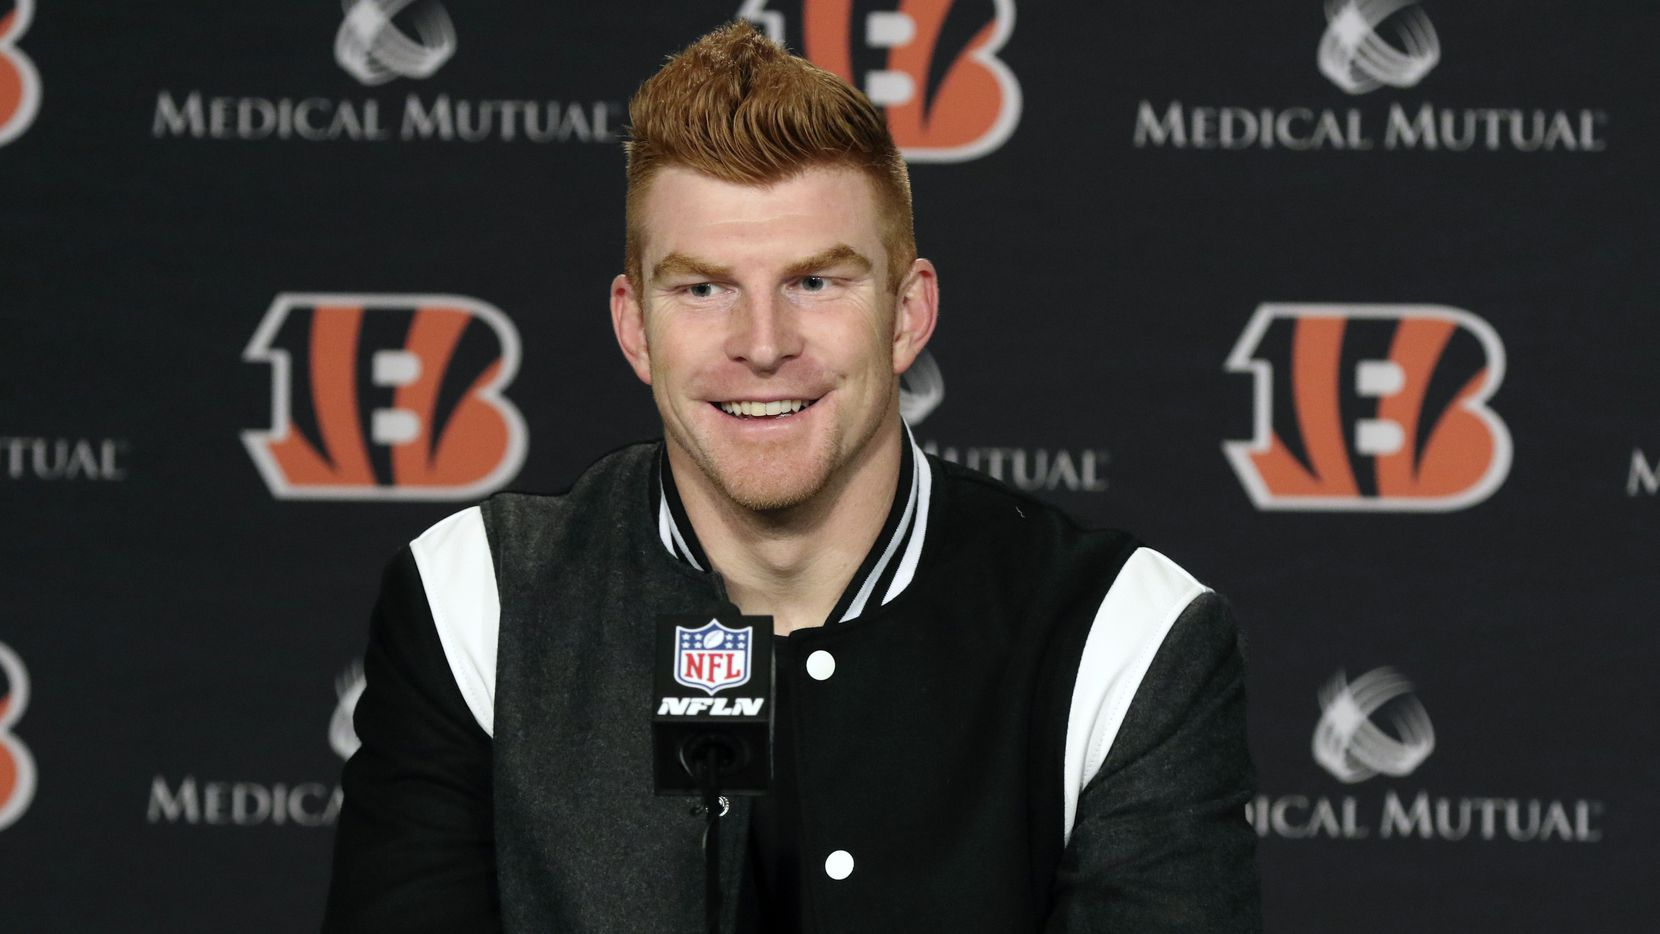 In this Dec. 29, 2019, file photo, Cincinnati Bengals quarterback Andy Dalton answers questions after his team defeated the Cleveland Browns in an NFL football game in Cincinnati. Dalton is coming home to Texas as Dak Prescott's backup with the Dallas Cowboys.